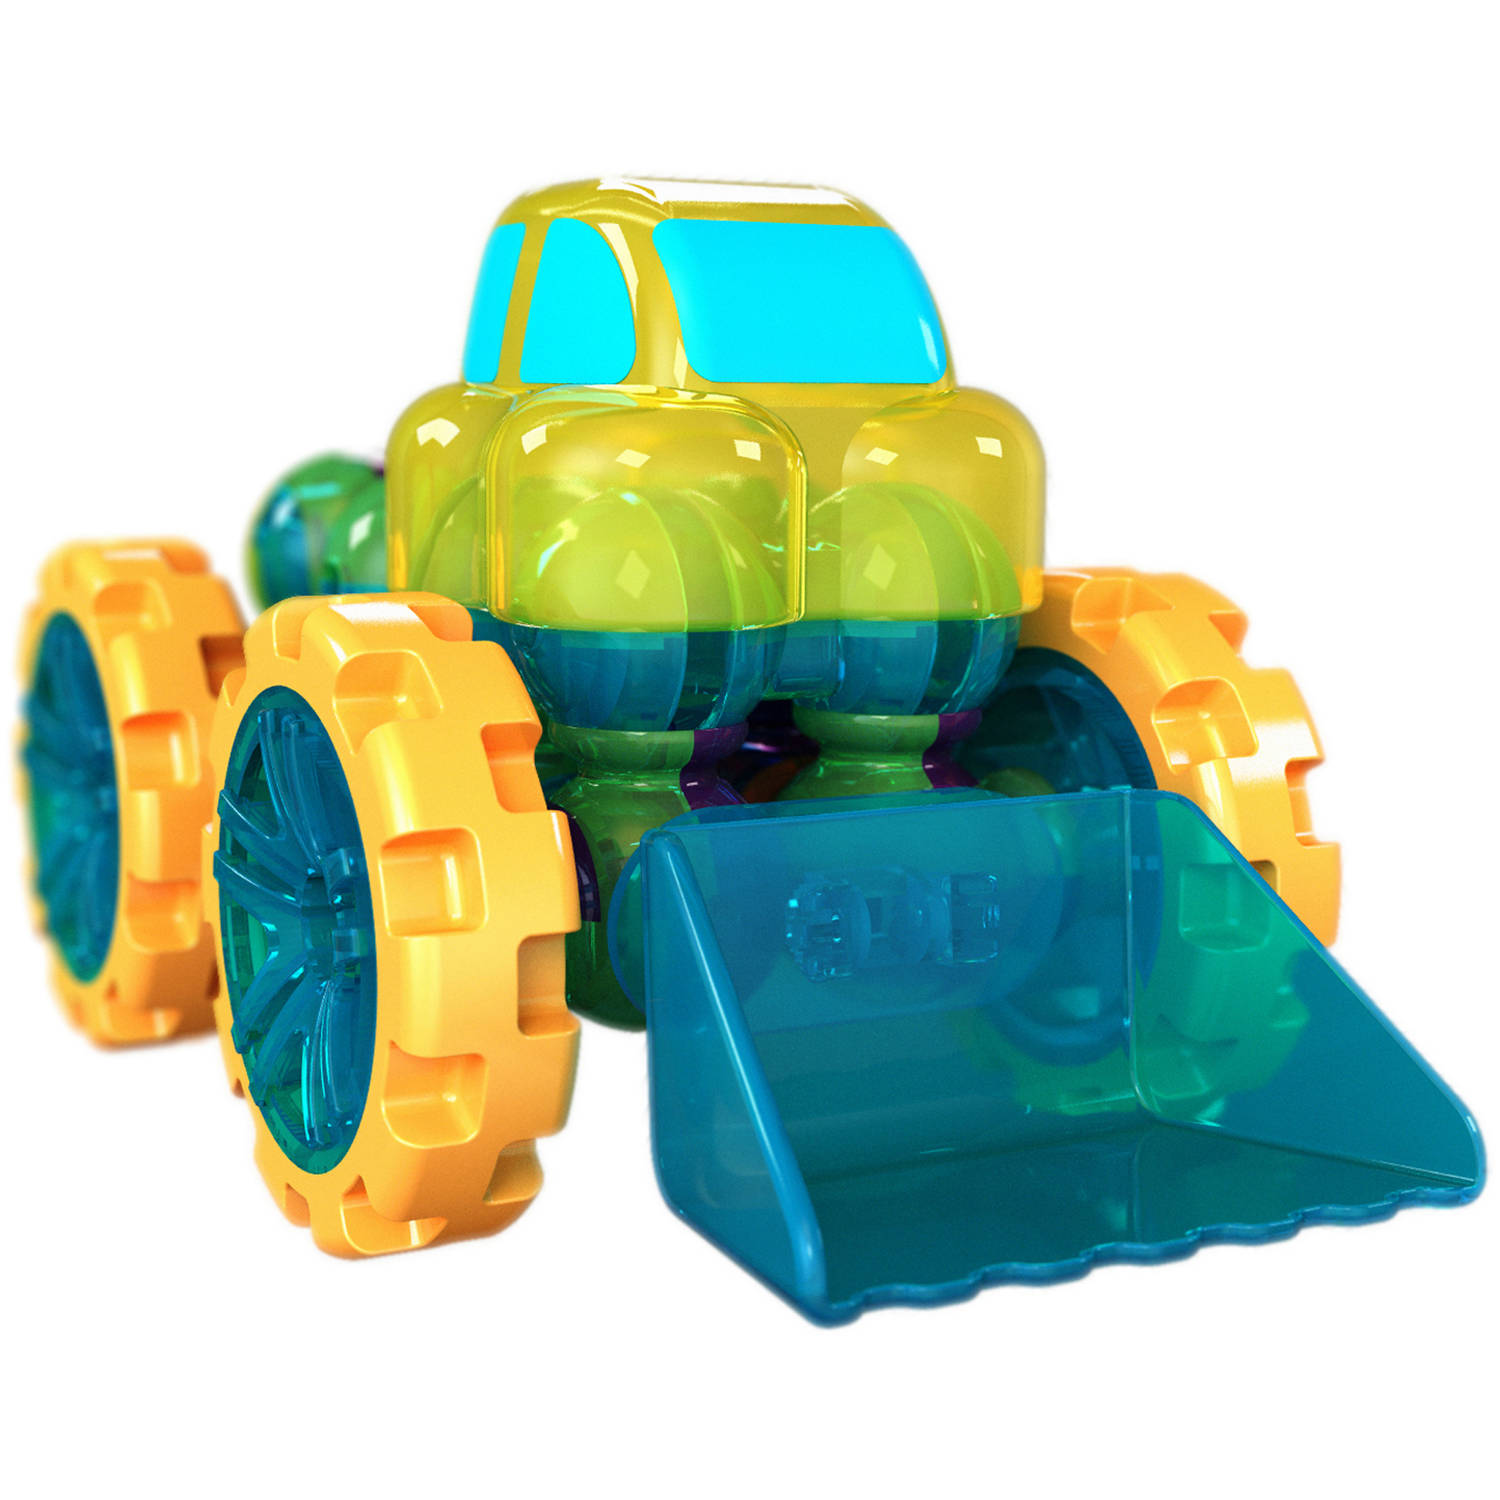 Lite Poppers STEM Learning Build a Loader Kit- LED Light, Build and Play Model Car Construction Toy with USB Powered LED Base